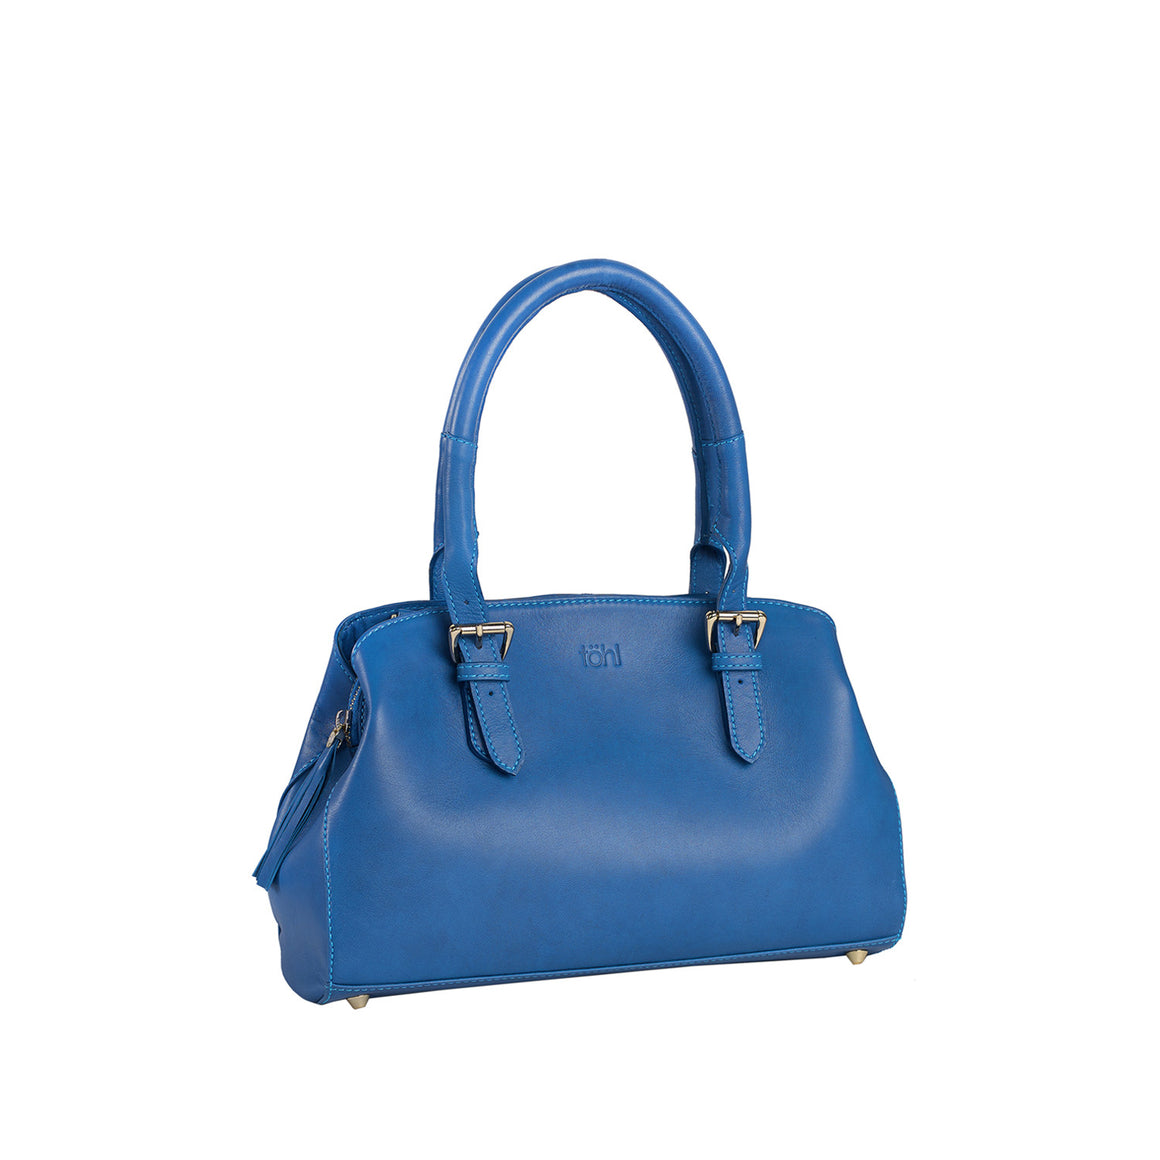 HH 0010 - TOHL ALVA WOMEN'S DAY BAG - AZURE